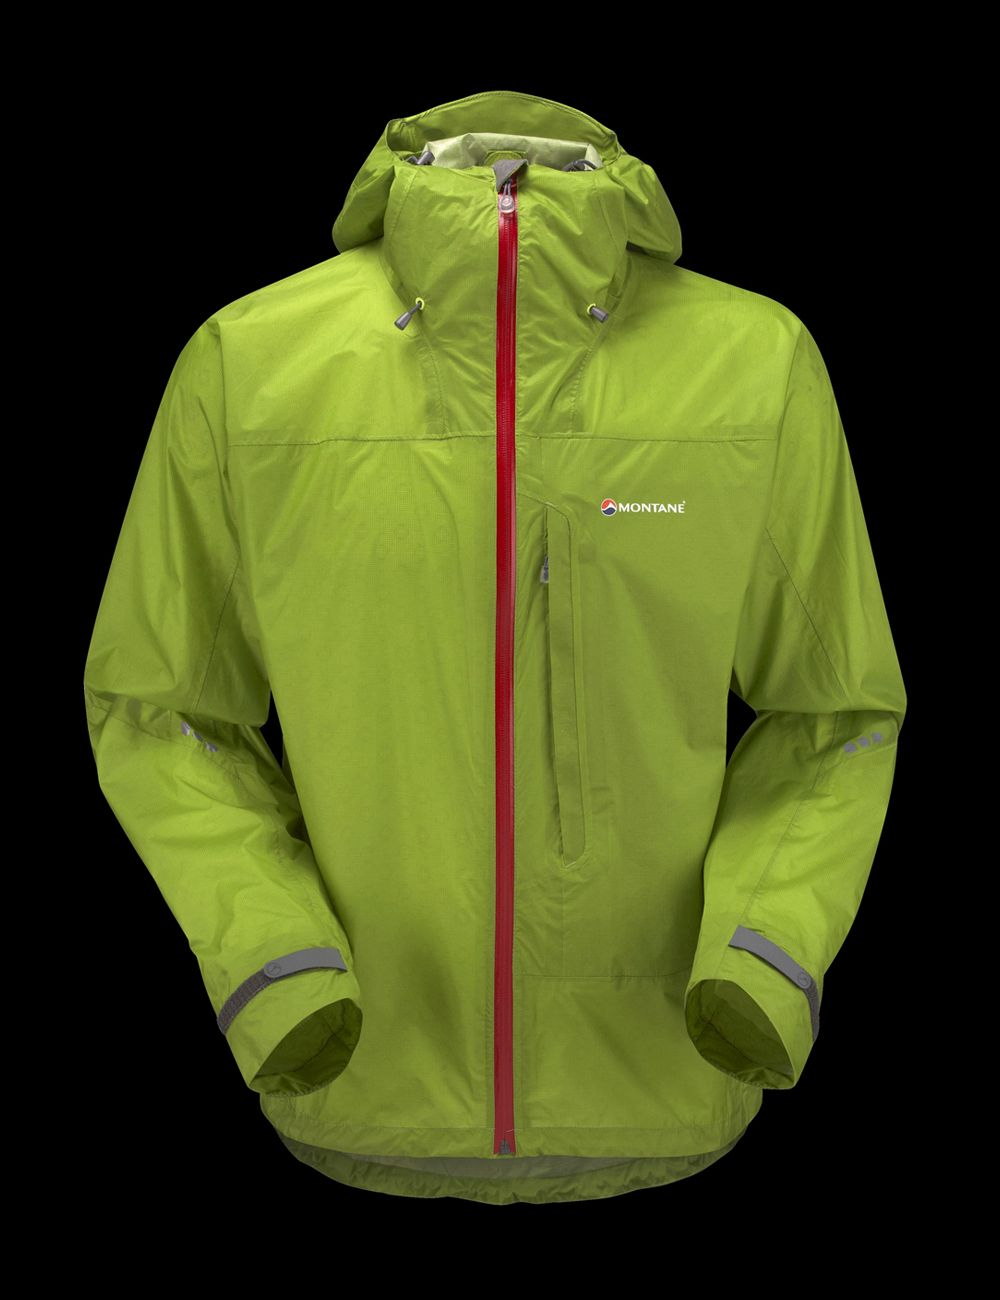 c5651d054 Mens Montane® Minimus Jacket. Lightweight breathable rain shell ...